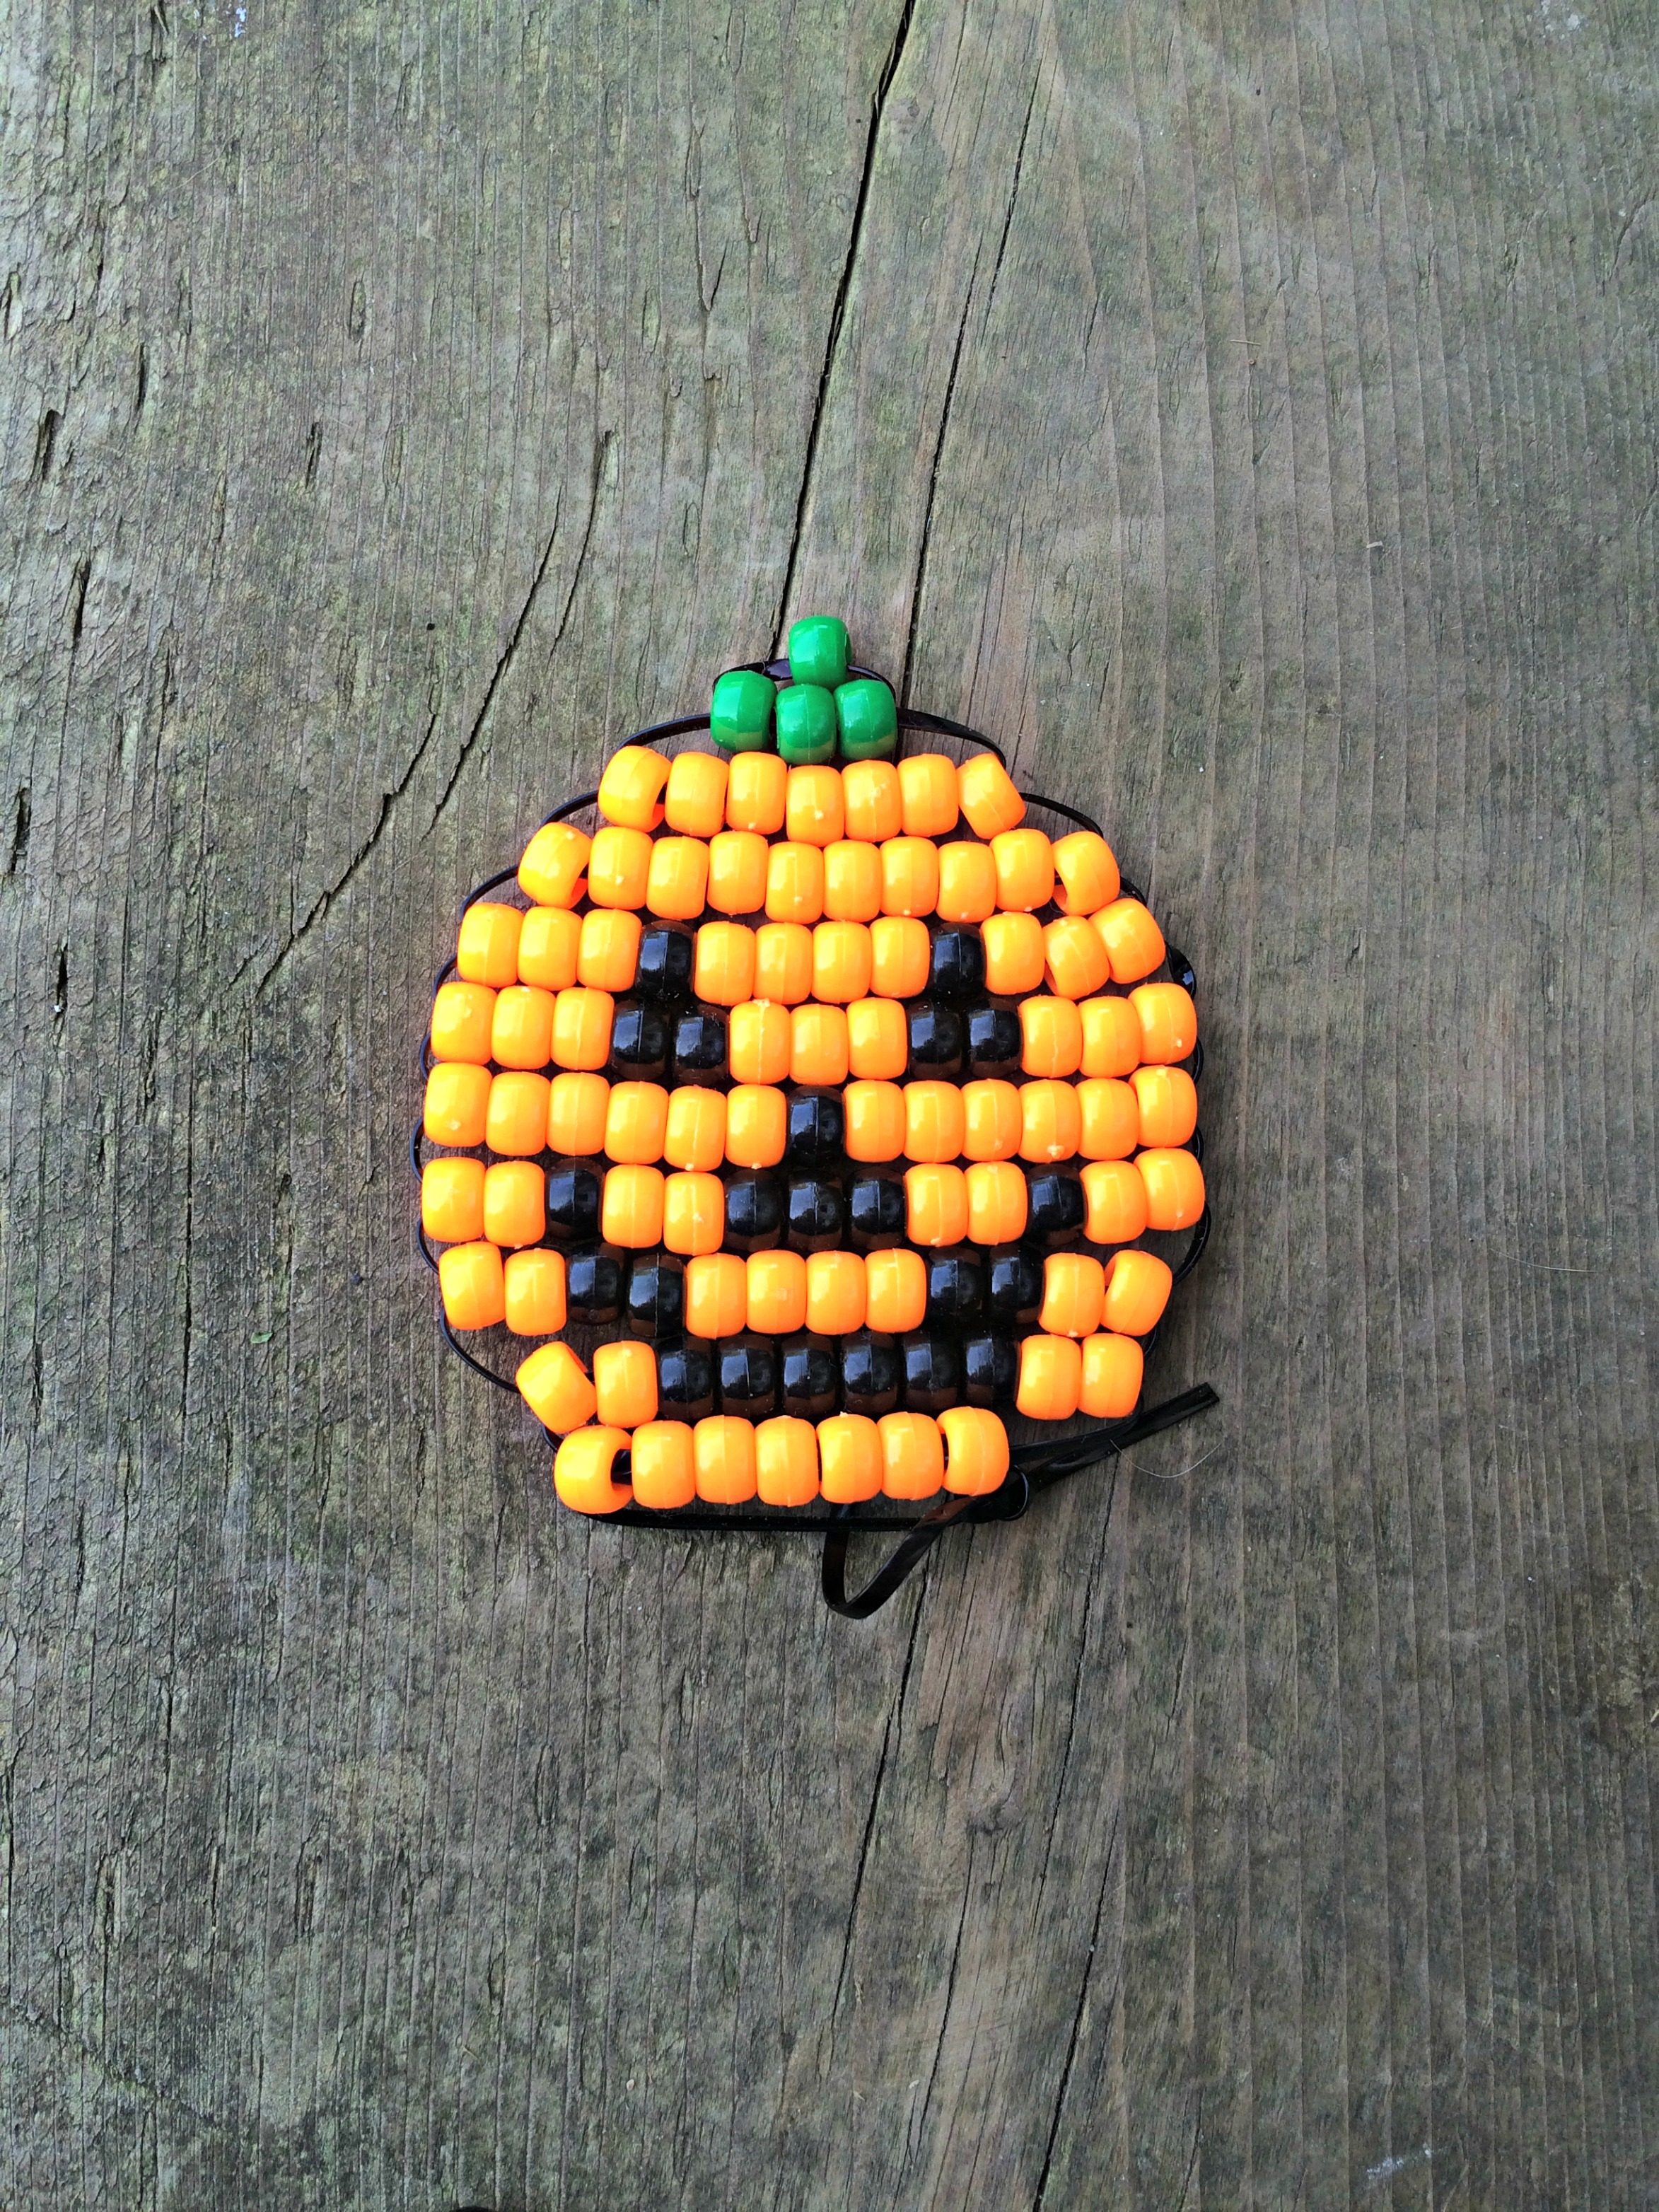 Learn how to make this Jack O'Lantern pony bead beadie buddie for Hallowe'en @ GagenGirls.com